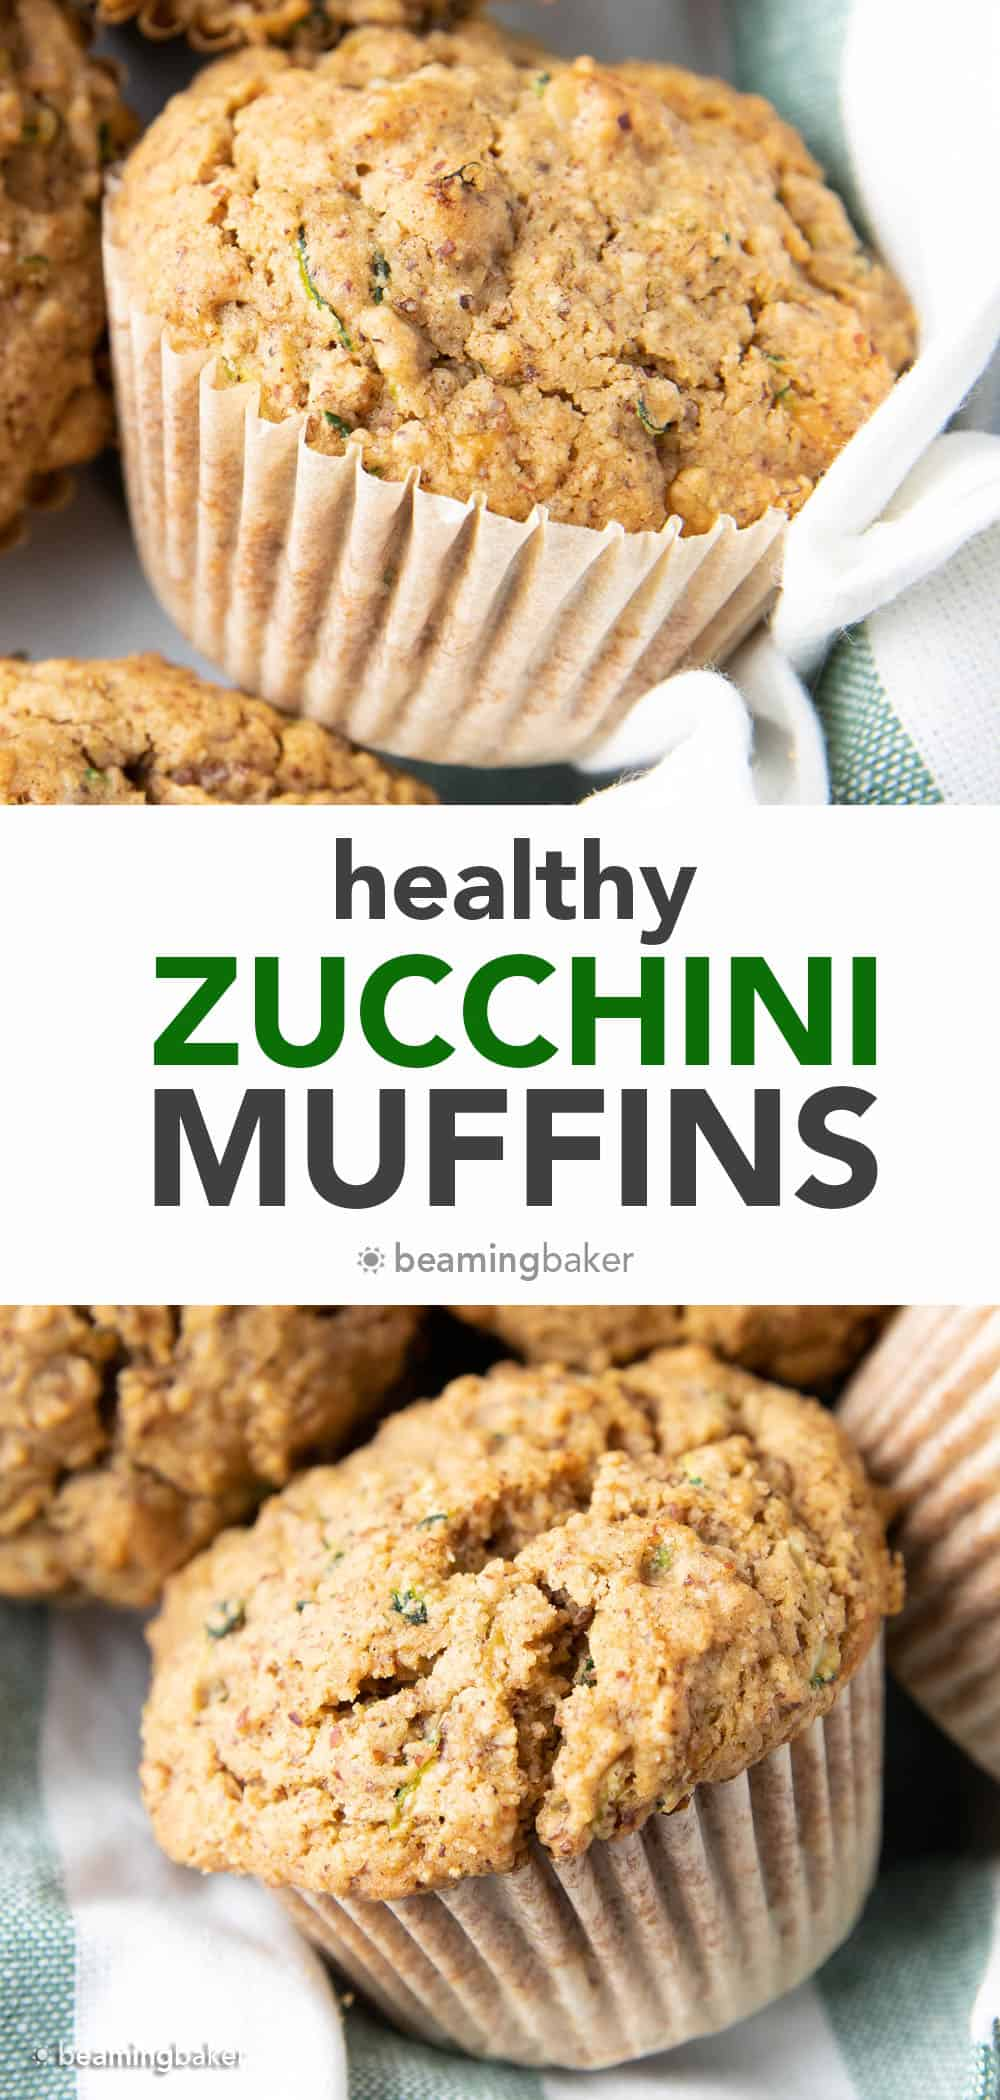 The Best Healthy Zucchini Muffins: Soft 'n moist zucchini muffins that are buttery, perfectly sweet and made with healthy ingredients. The best zucchini muffin recipe! #Healthy #Zucchini #Muffins #Recipe | Recipe at BeamingBaker.com